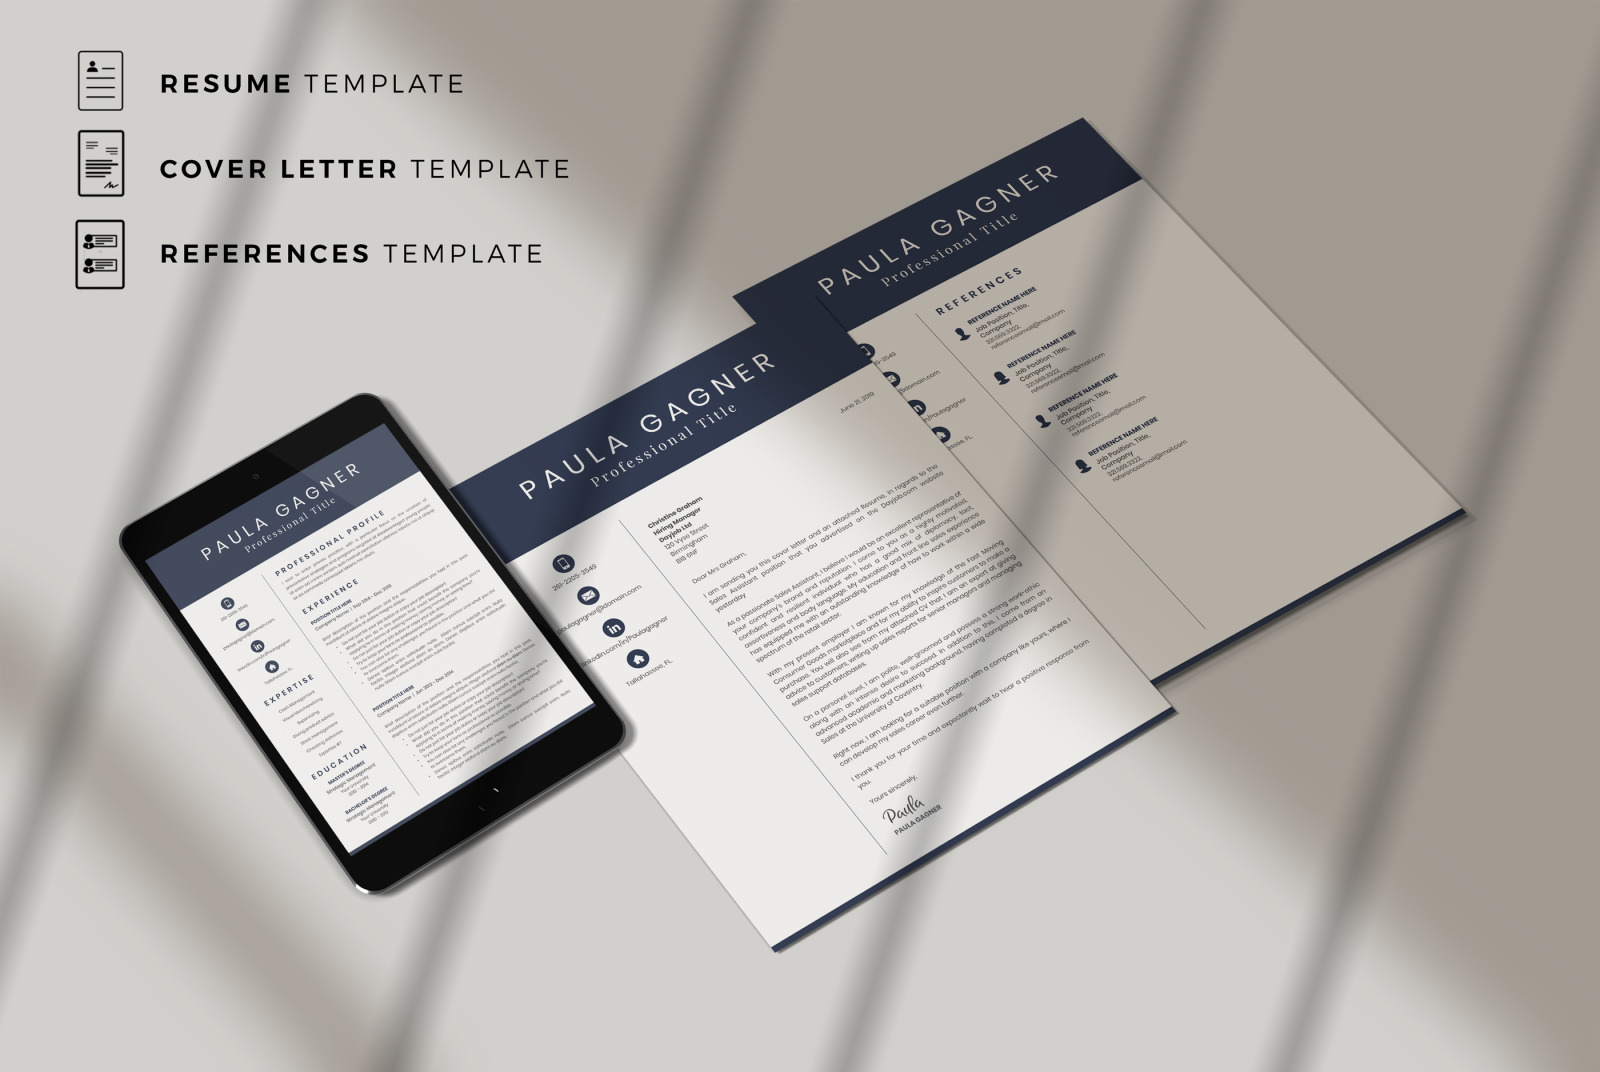 Modern and Professional Resume Layout, Cover Letter and References page